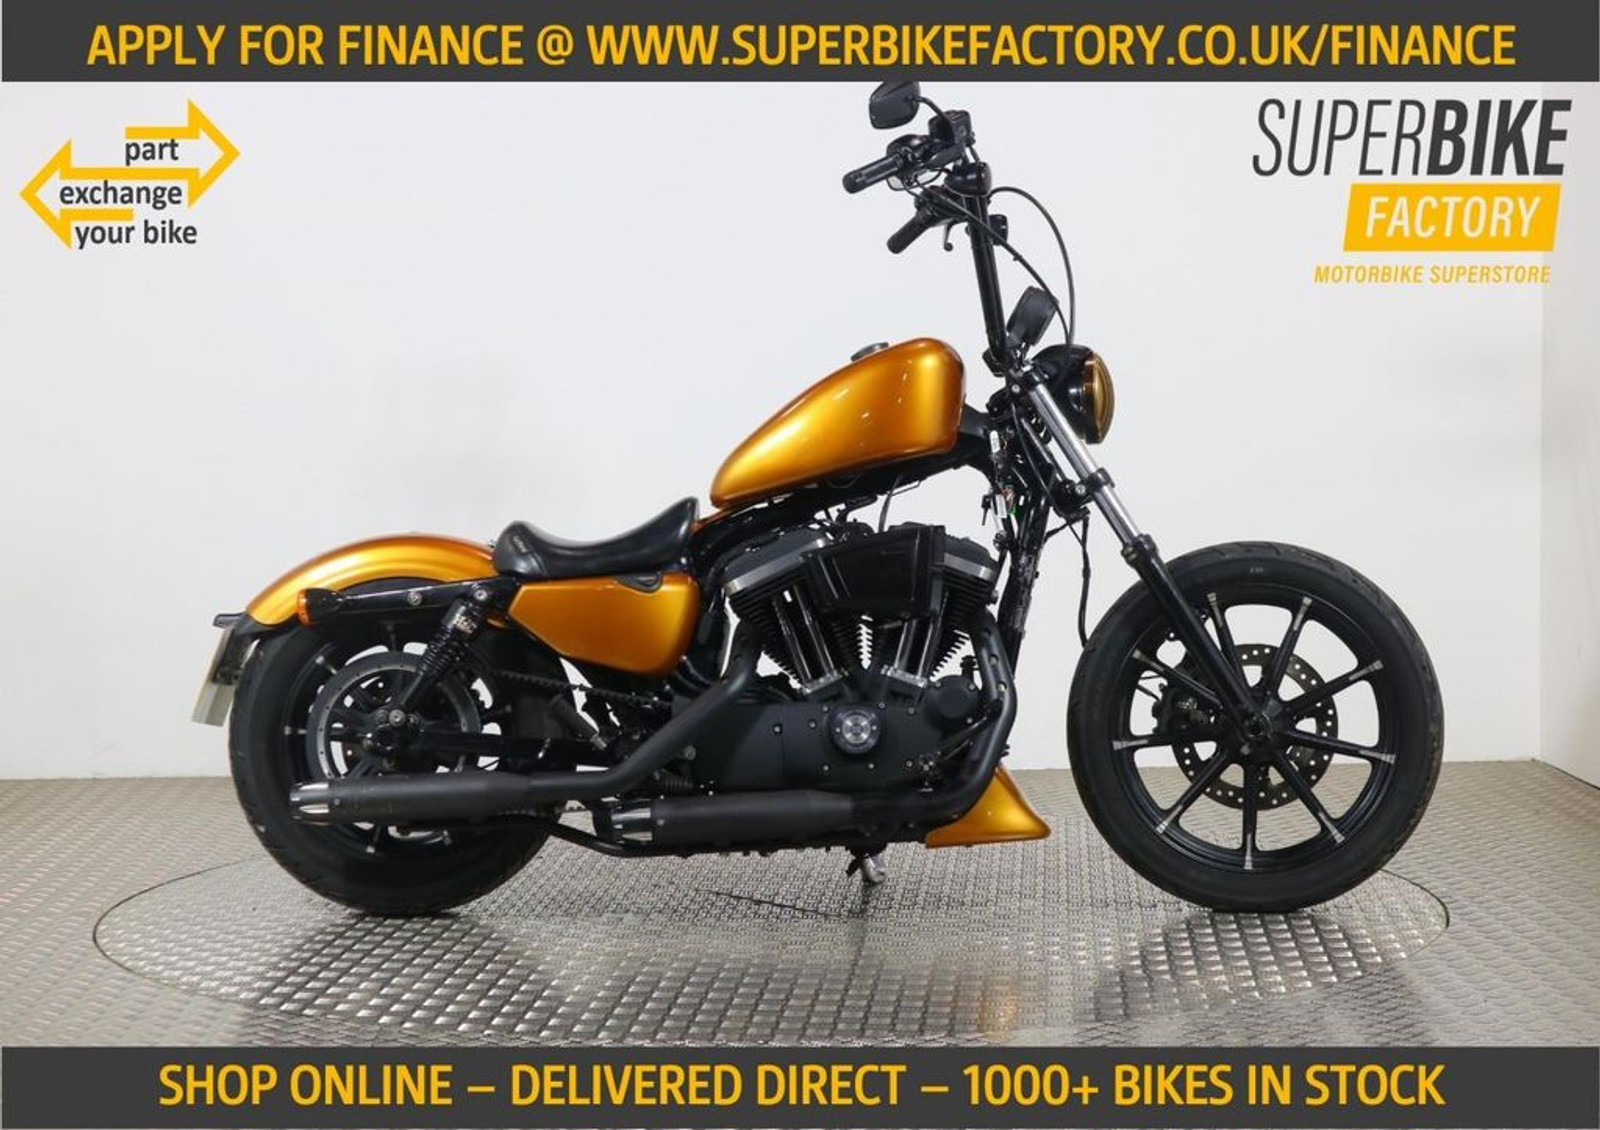 2018 Harley Davidson Sportster Iron 883 Gold With 4323 Miles Used Motorbikes Dealer Macclesfield Cheshire The Superbike Factory